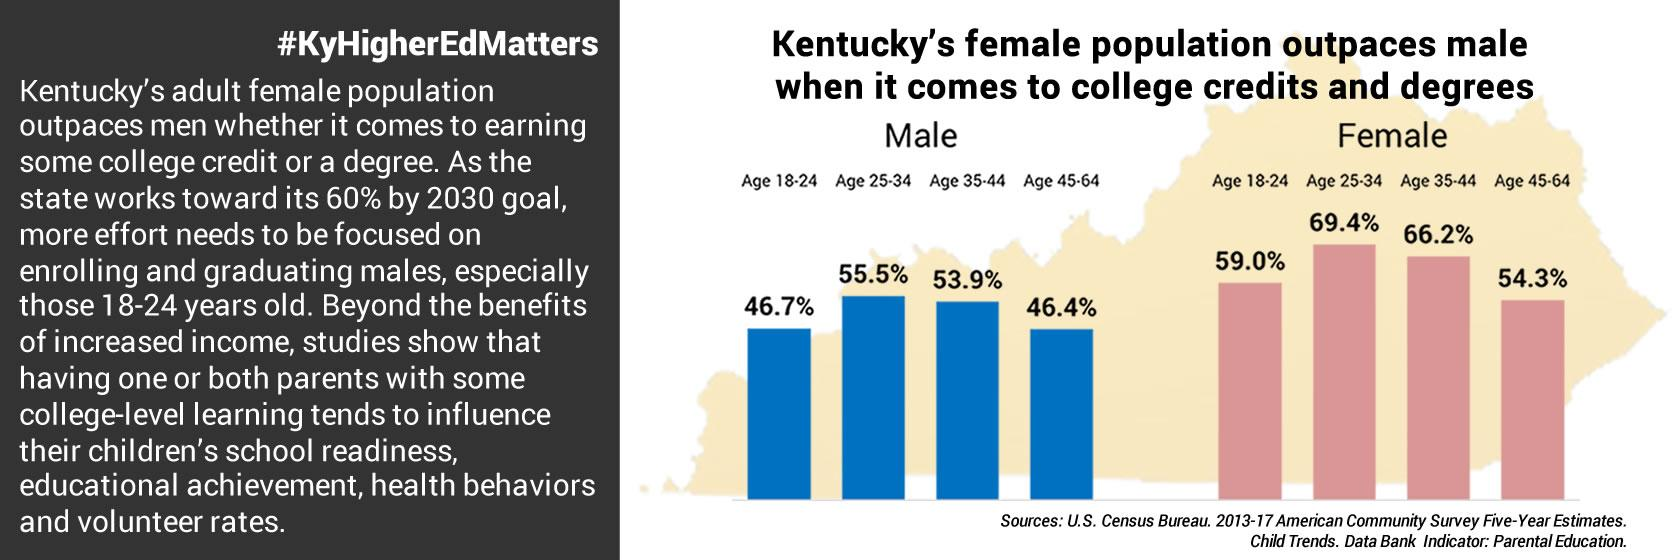 Females outpace males when it comes to college credits, degrees in Kentucky